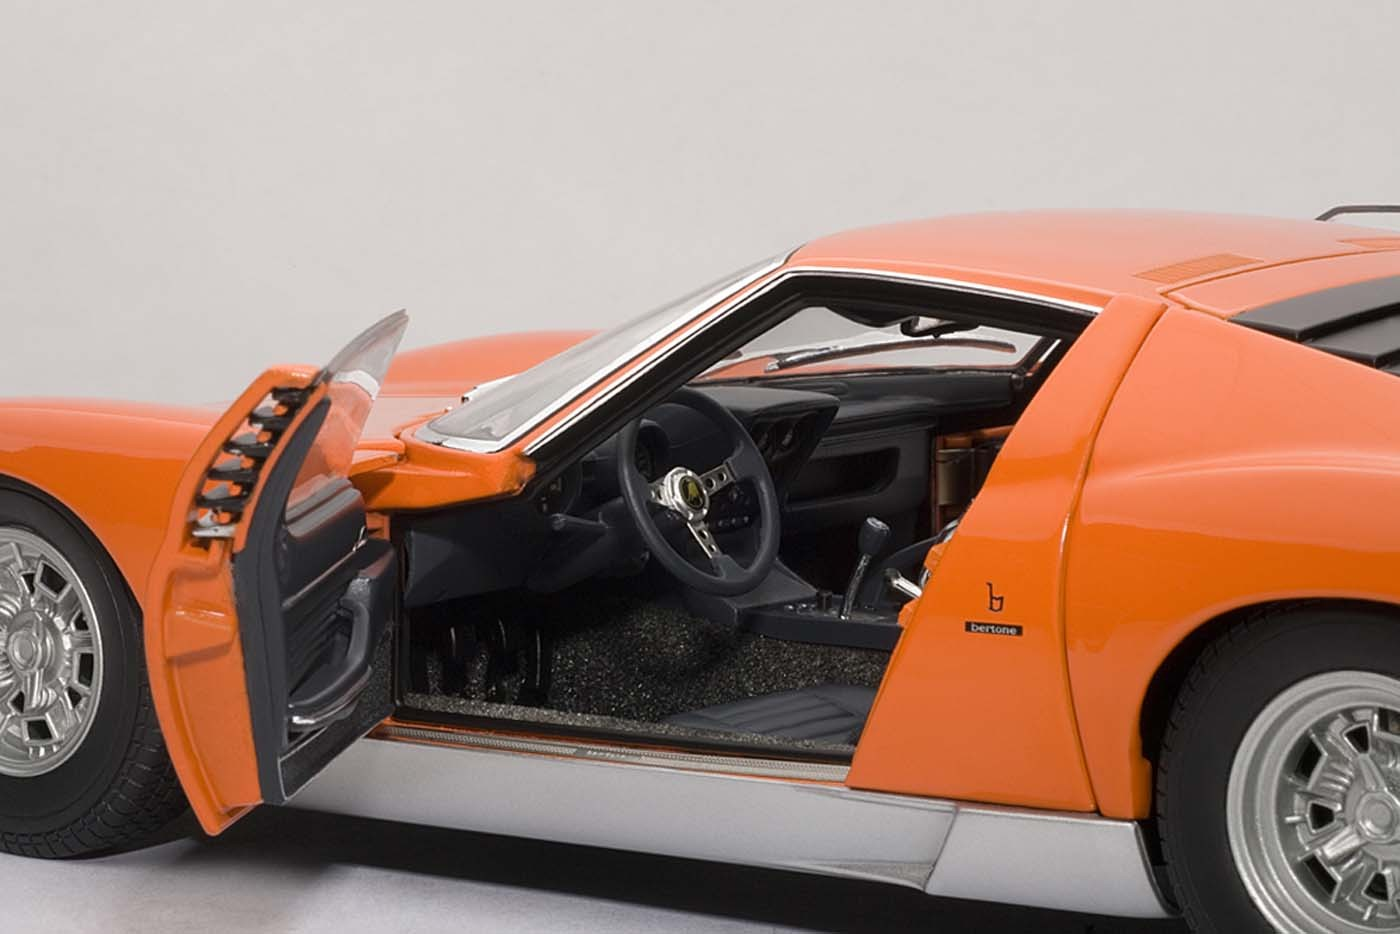 Autoart Highly Detailed Die Cast Model Orange Lamborghini Miura Sv